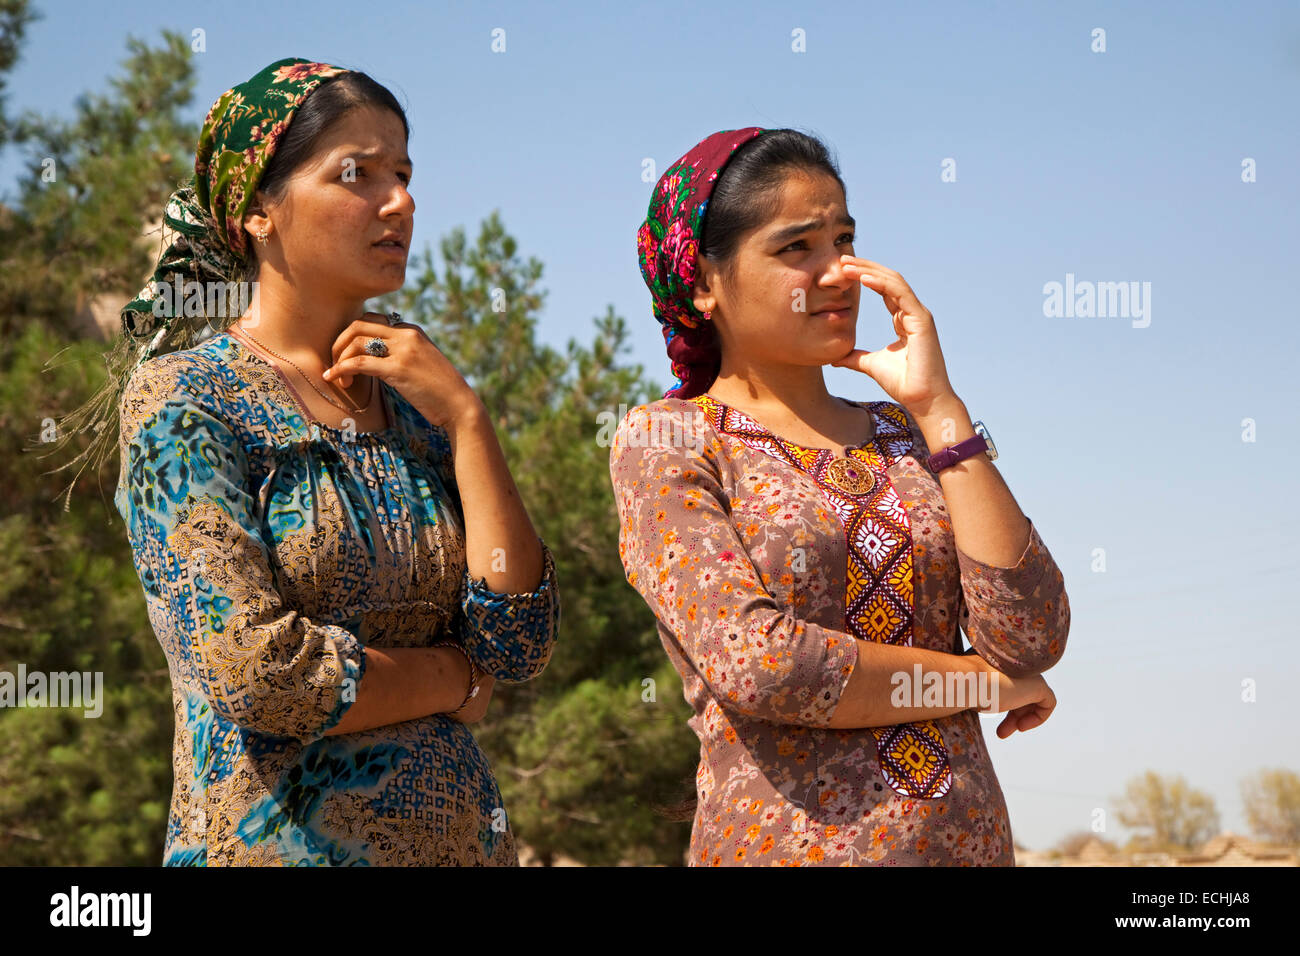 Traditional Turkmen Clothing Women